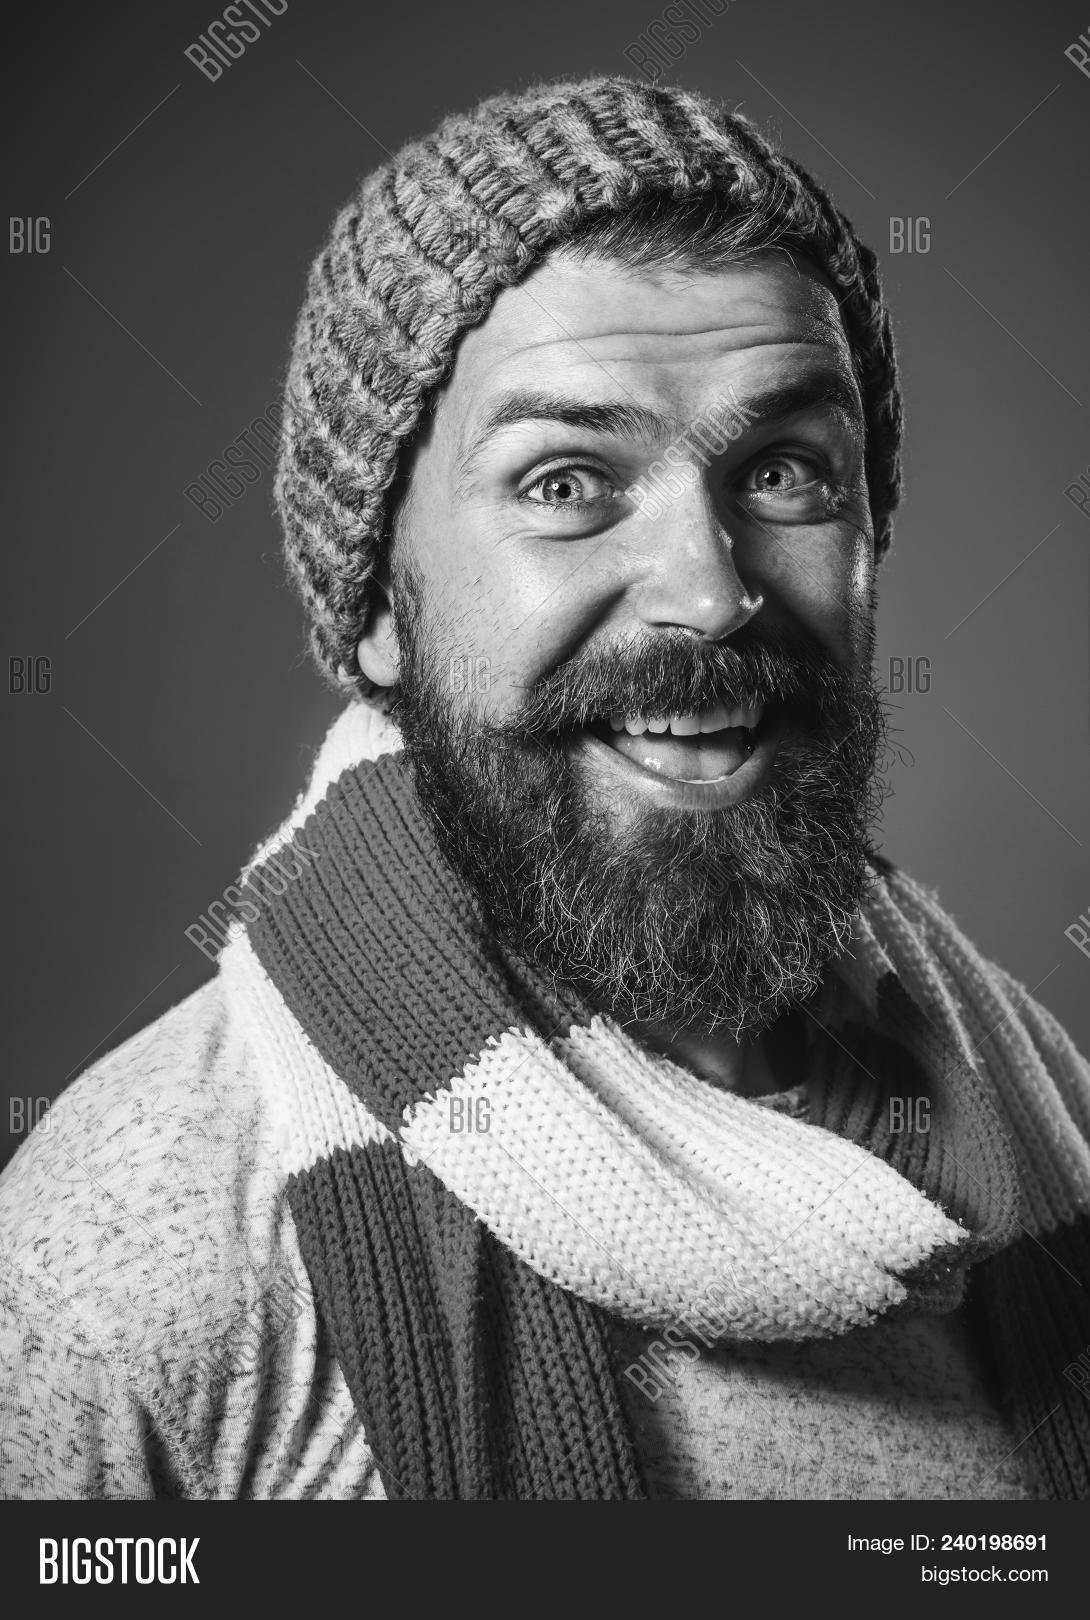 1d49f6bd04d Fashionable handsome man with scarf and hat. Smiling attractive bearded man  in warm knitted hat and scarf. Closeup portrait. Black and white.